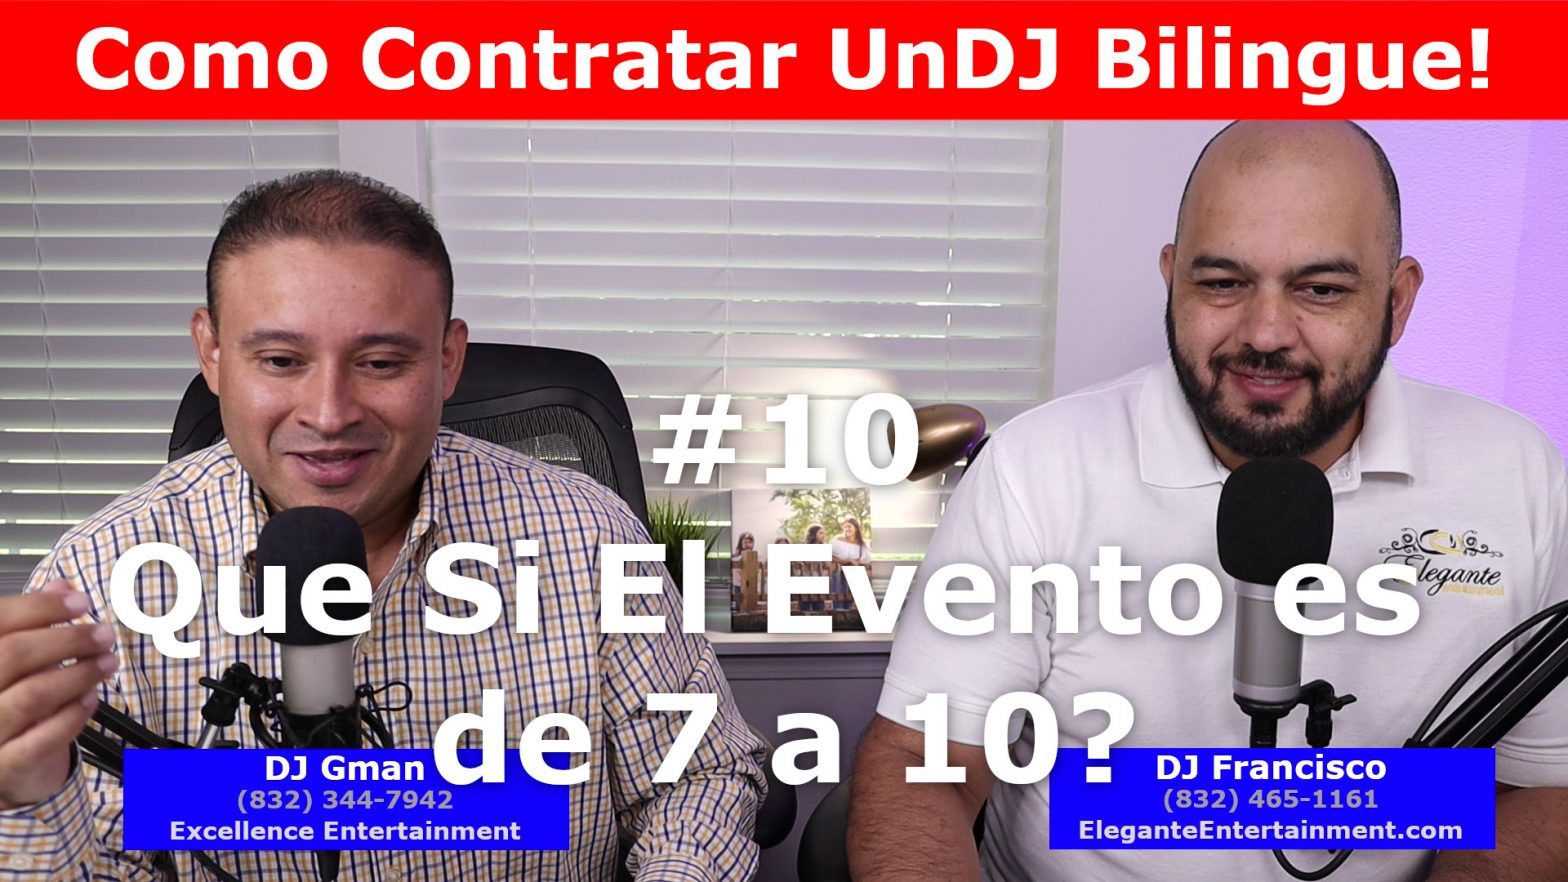 DJ in Houston   #10 Events from 7 to 10